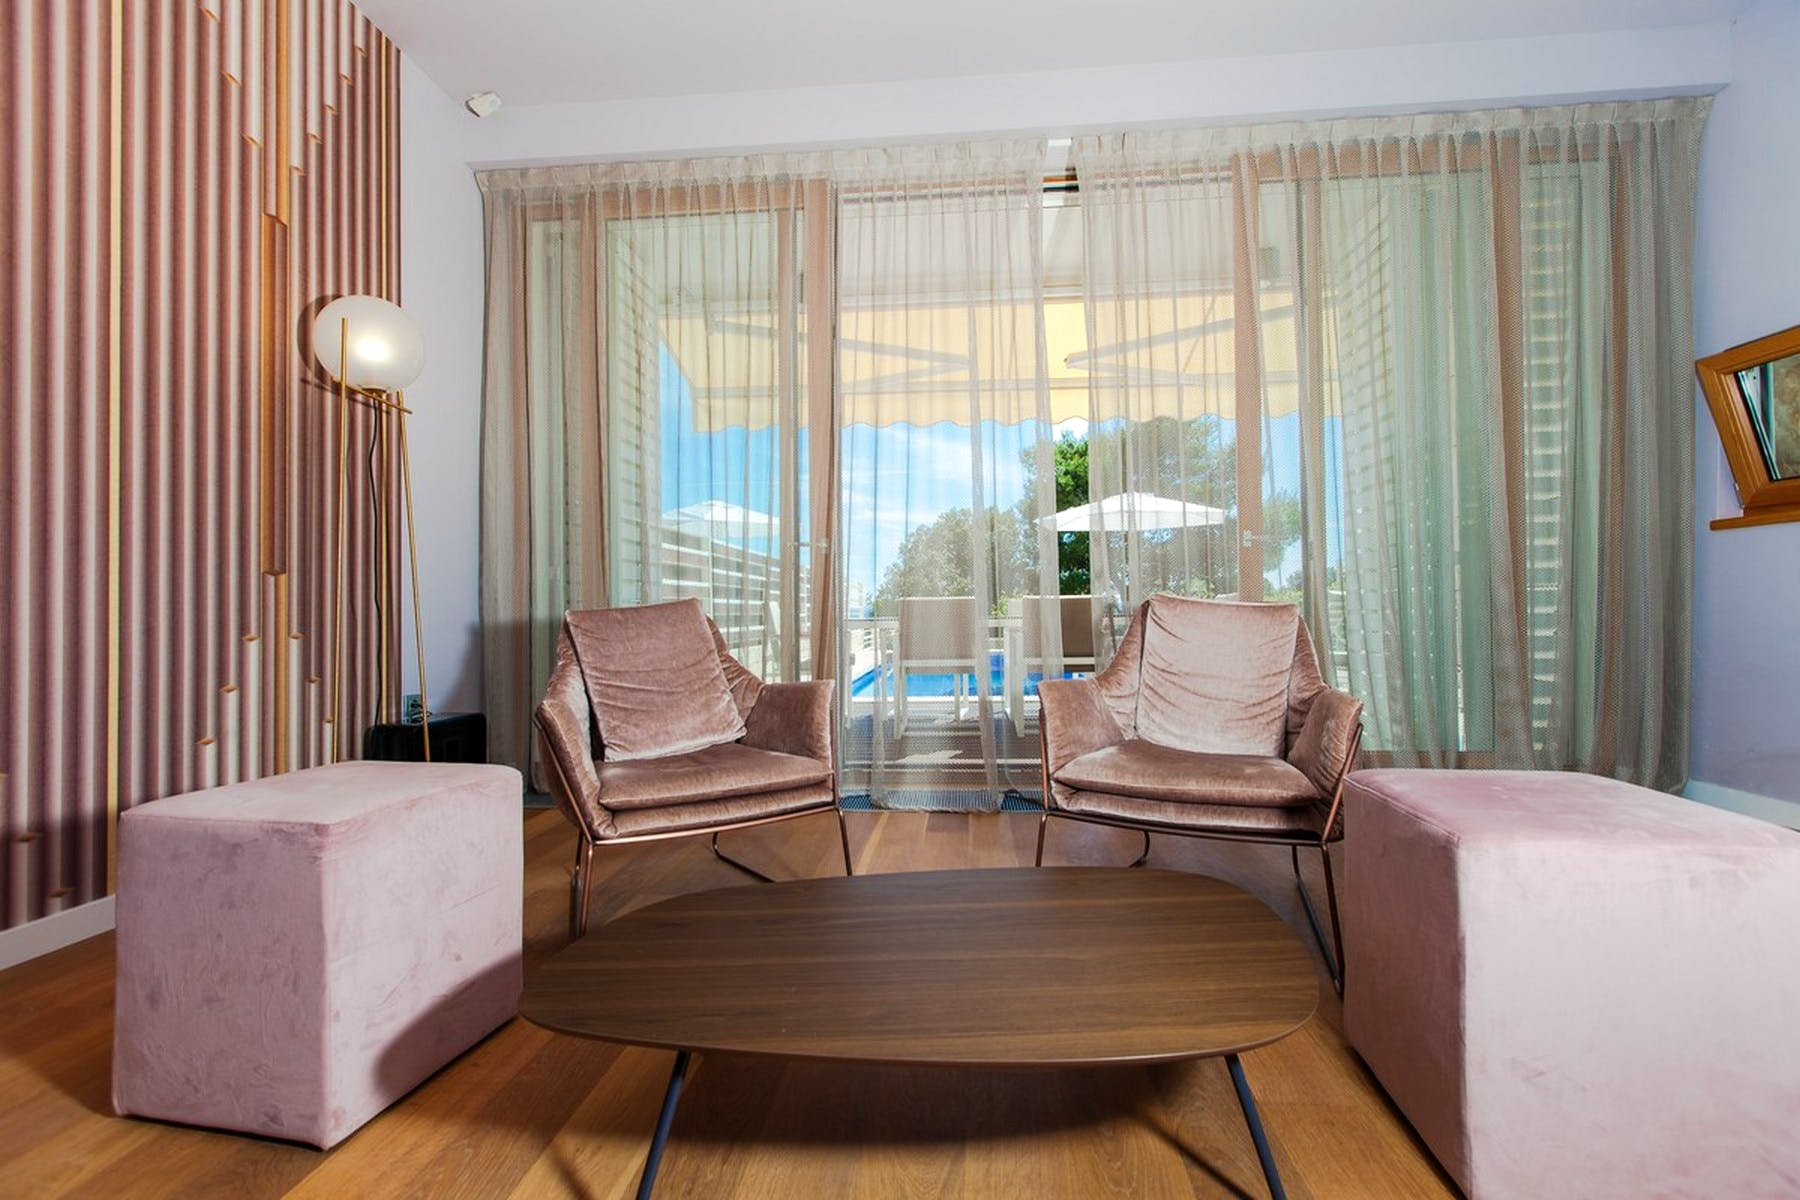 Amazing pink shades in the interior